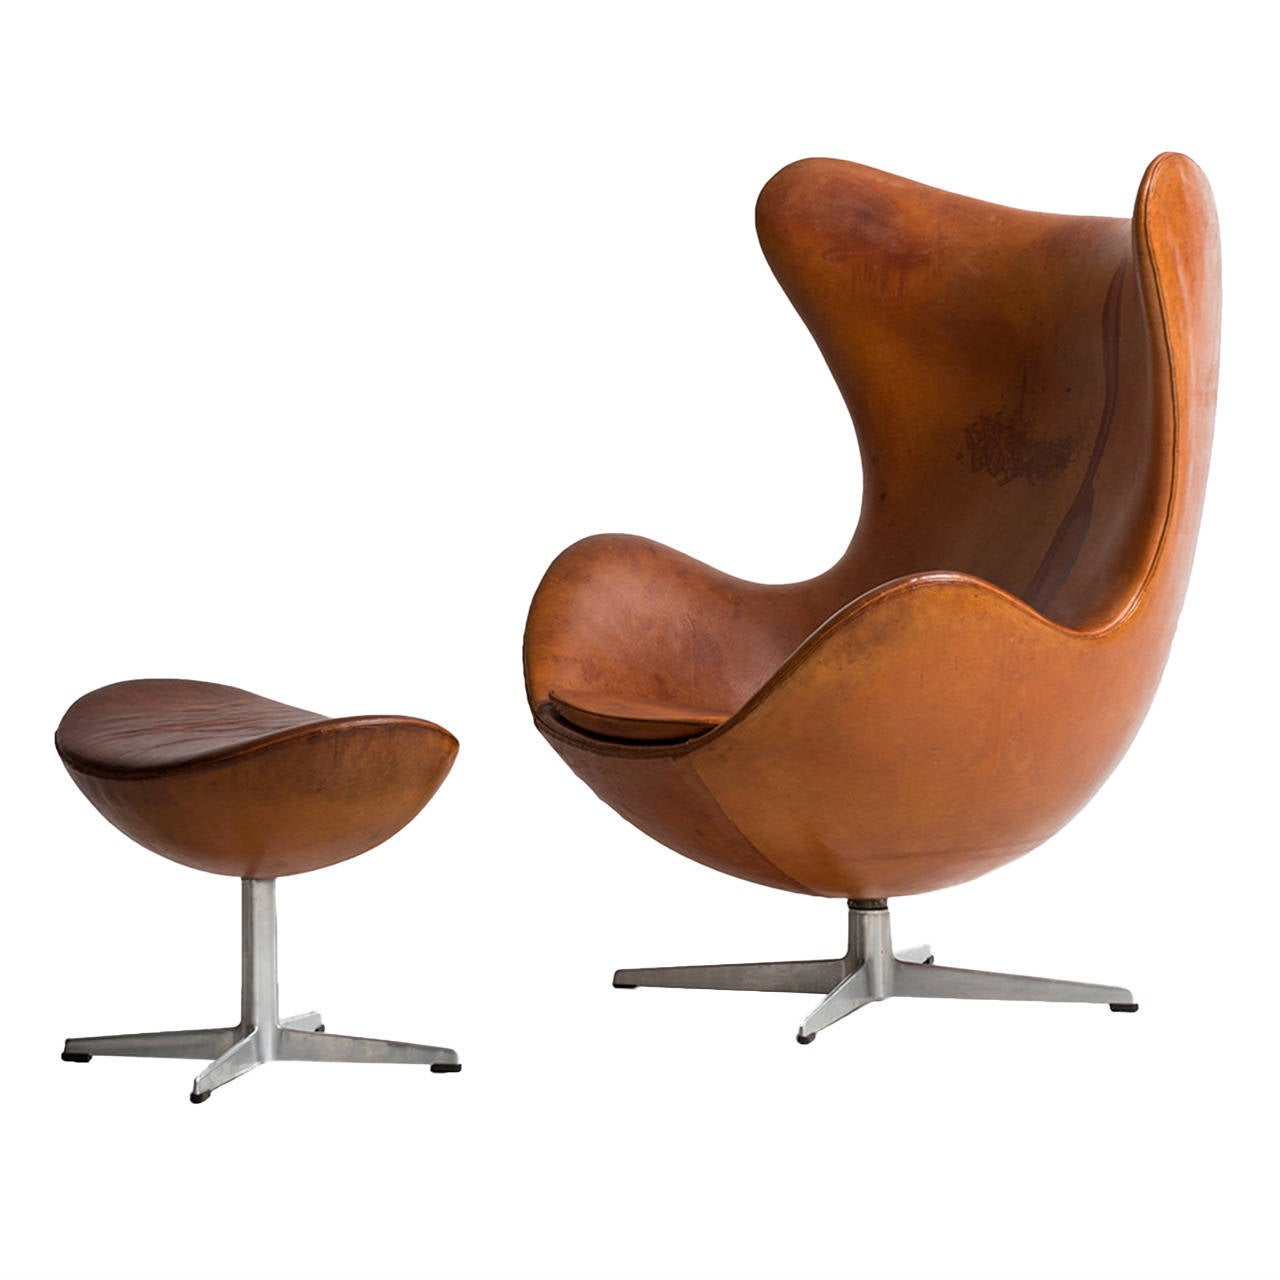 Arne Jacobsen Egg Chair In Original Cognac Brown Leather